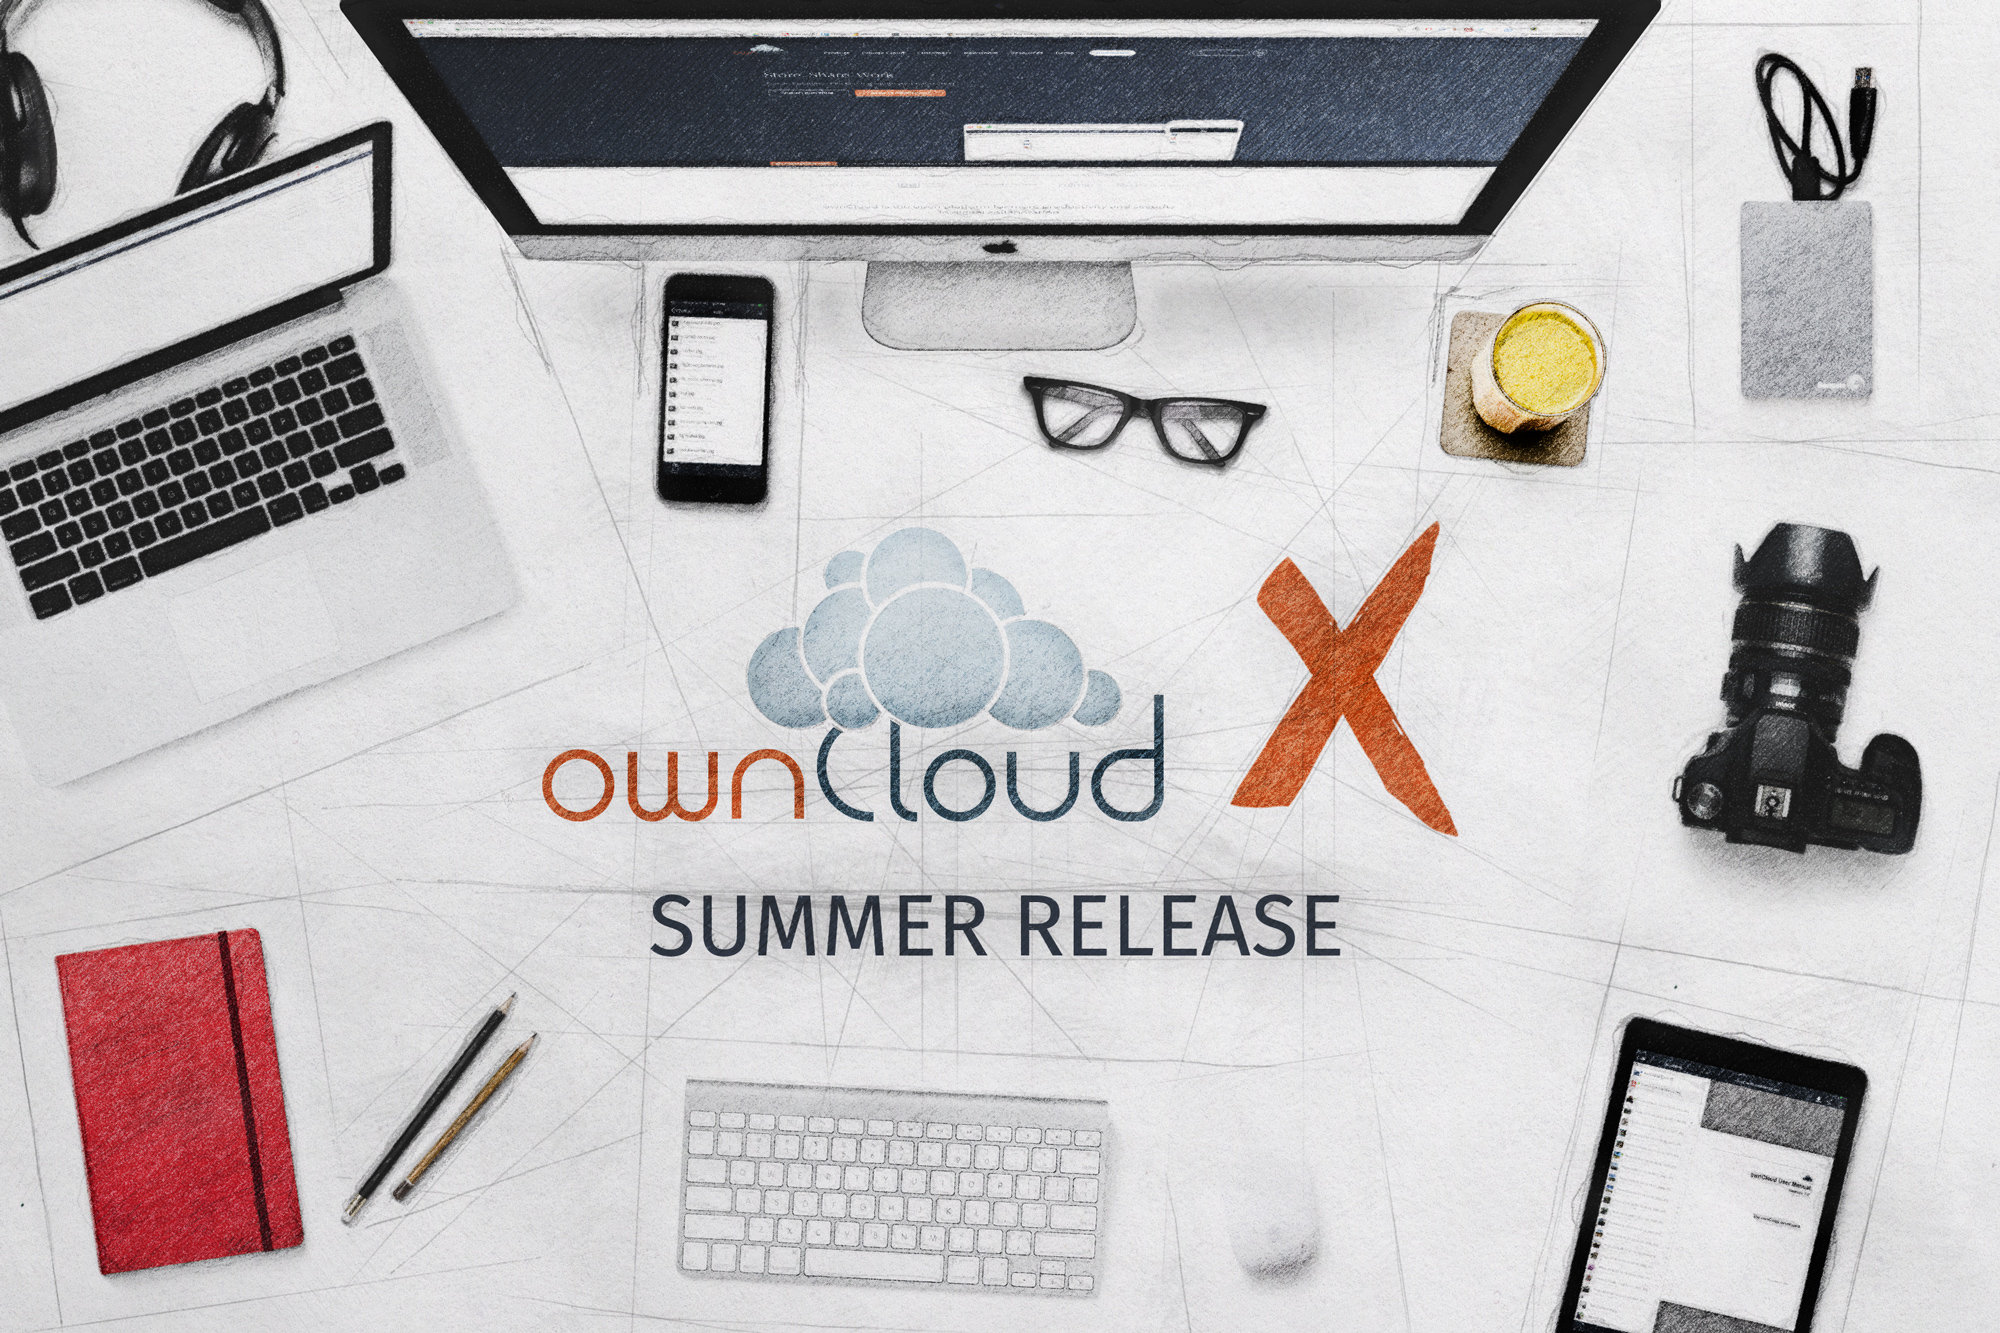 Owncloud Server 1009 Release Owncloud